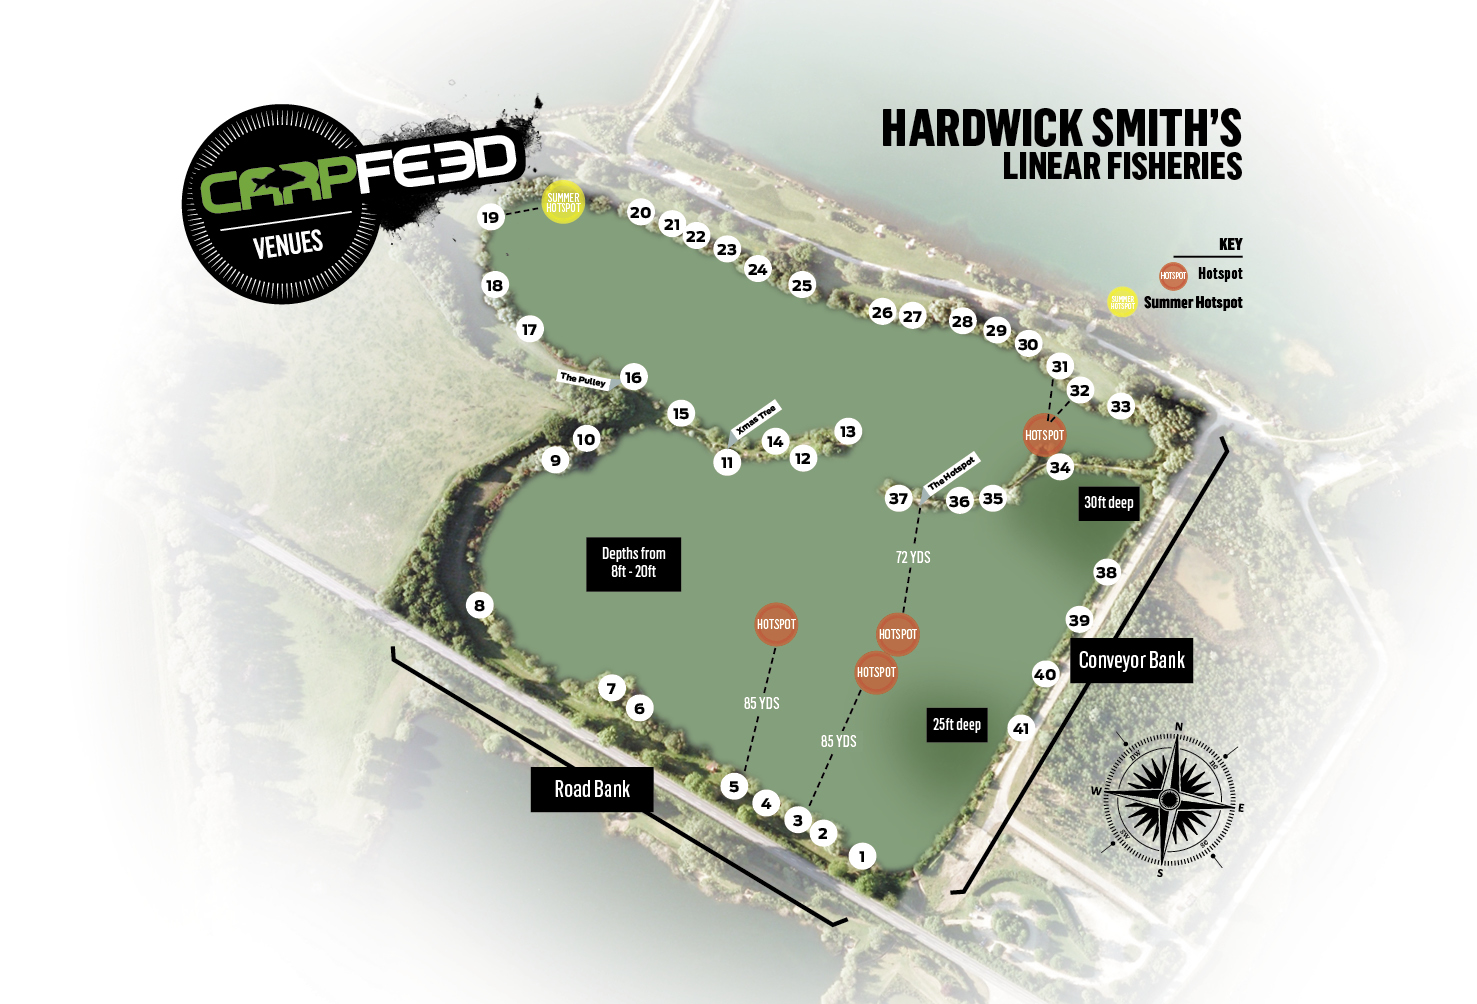 CLICK THE MAP FOR OUR HARDWICK GUIDE